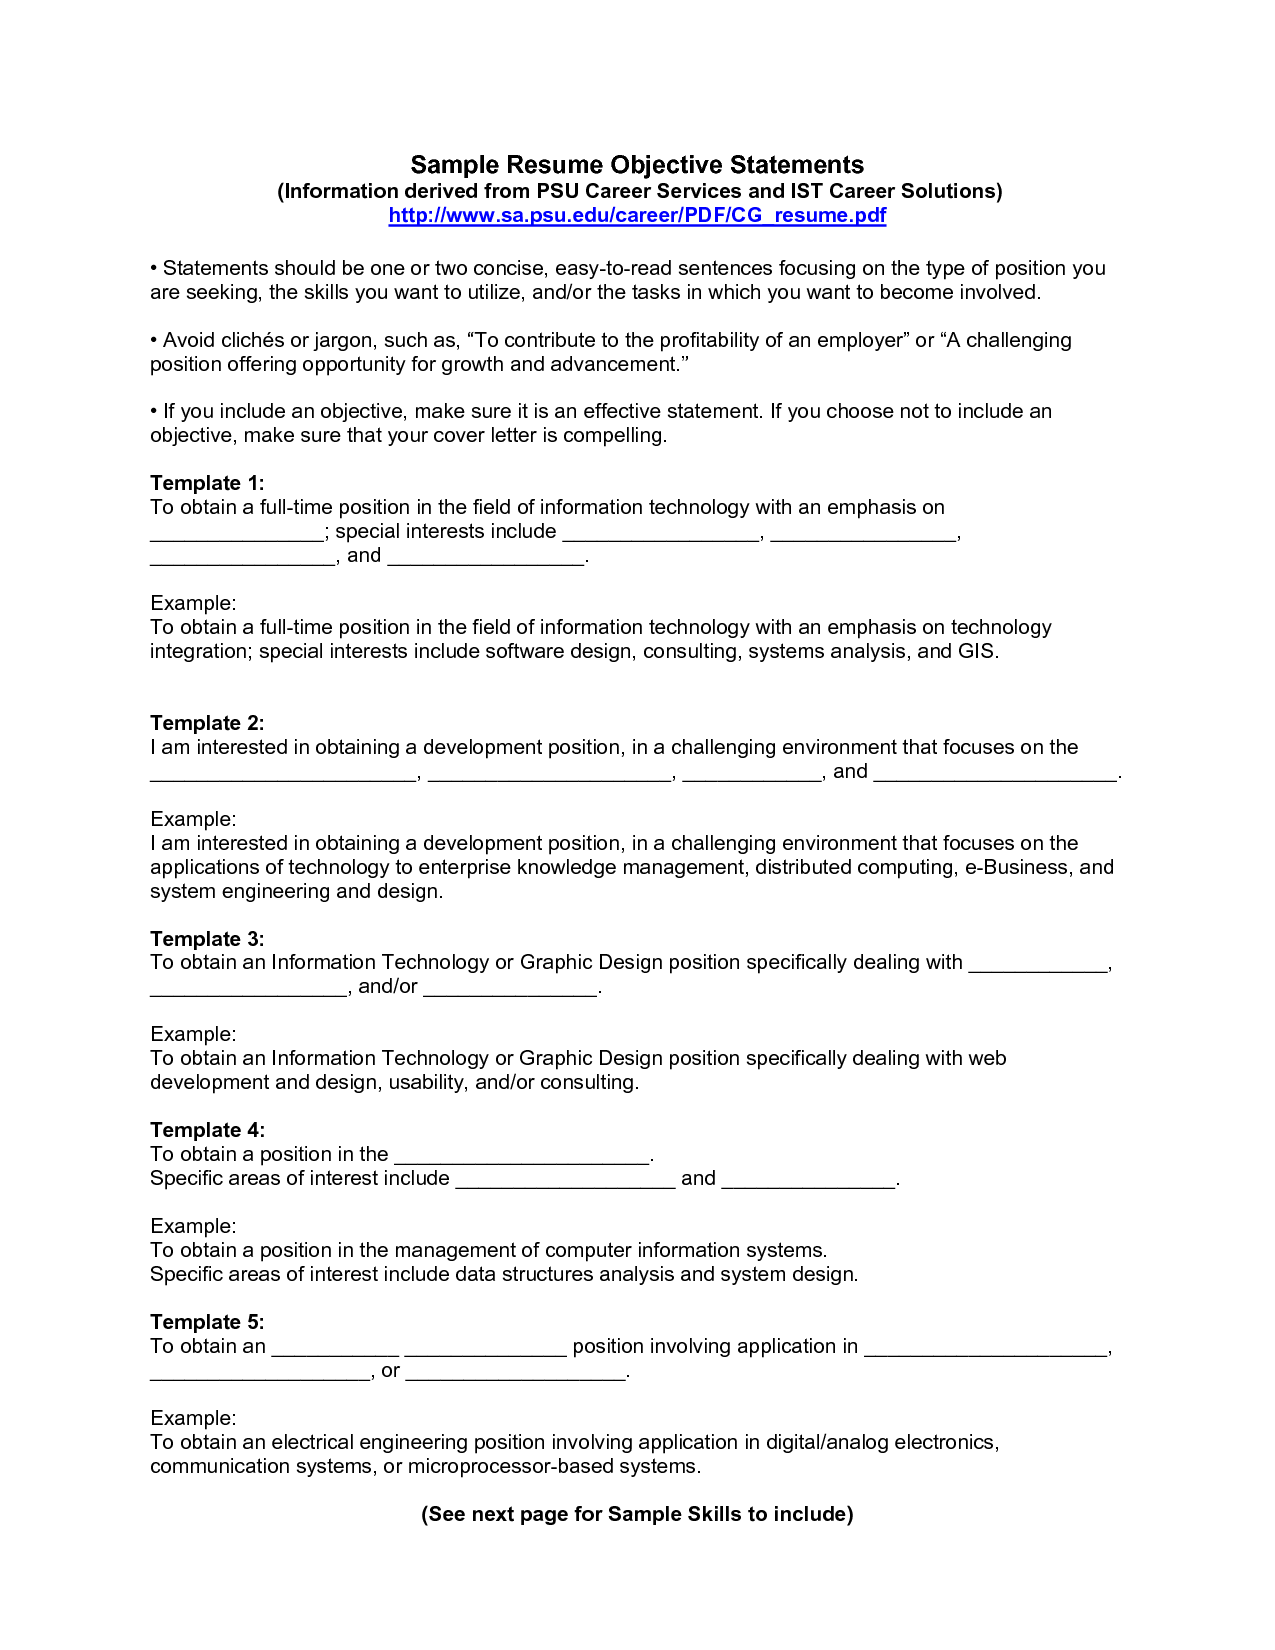 Resume Purpose Statement Rome Fontanacountryinn Com